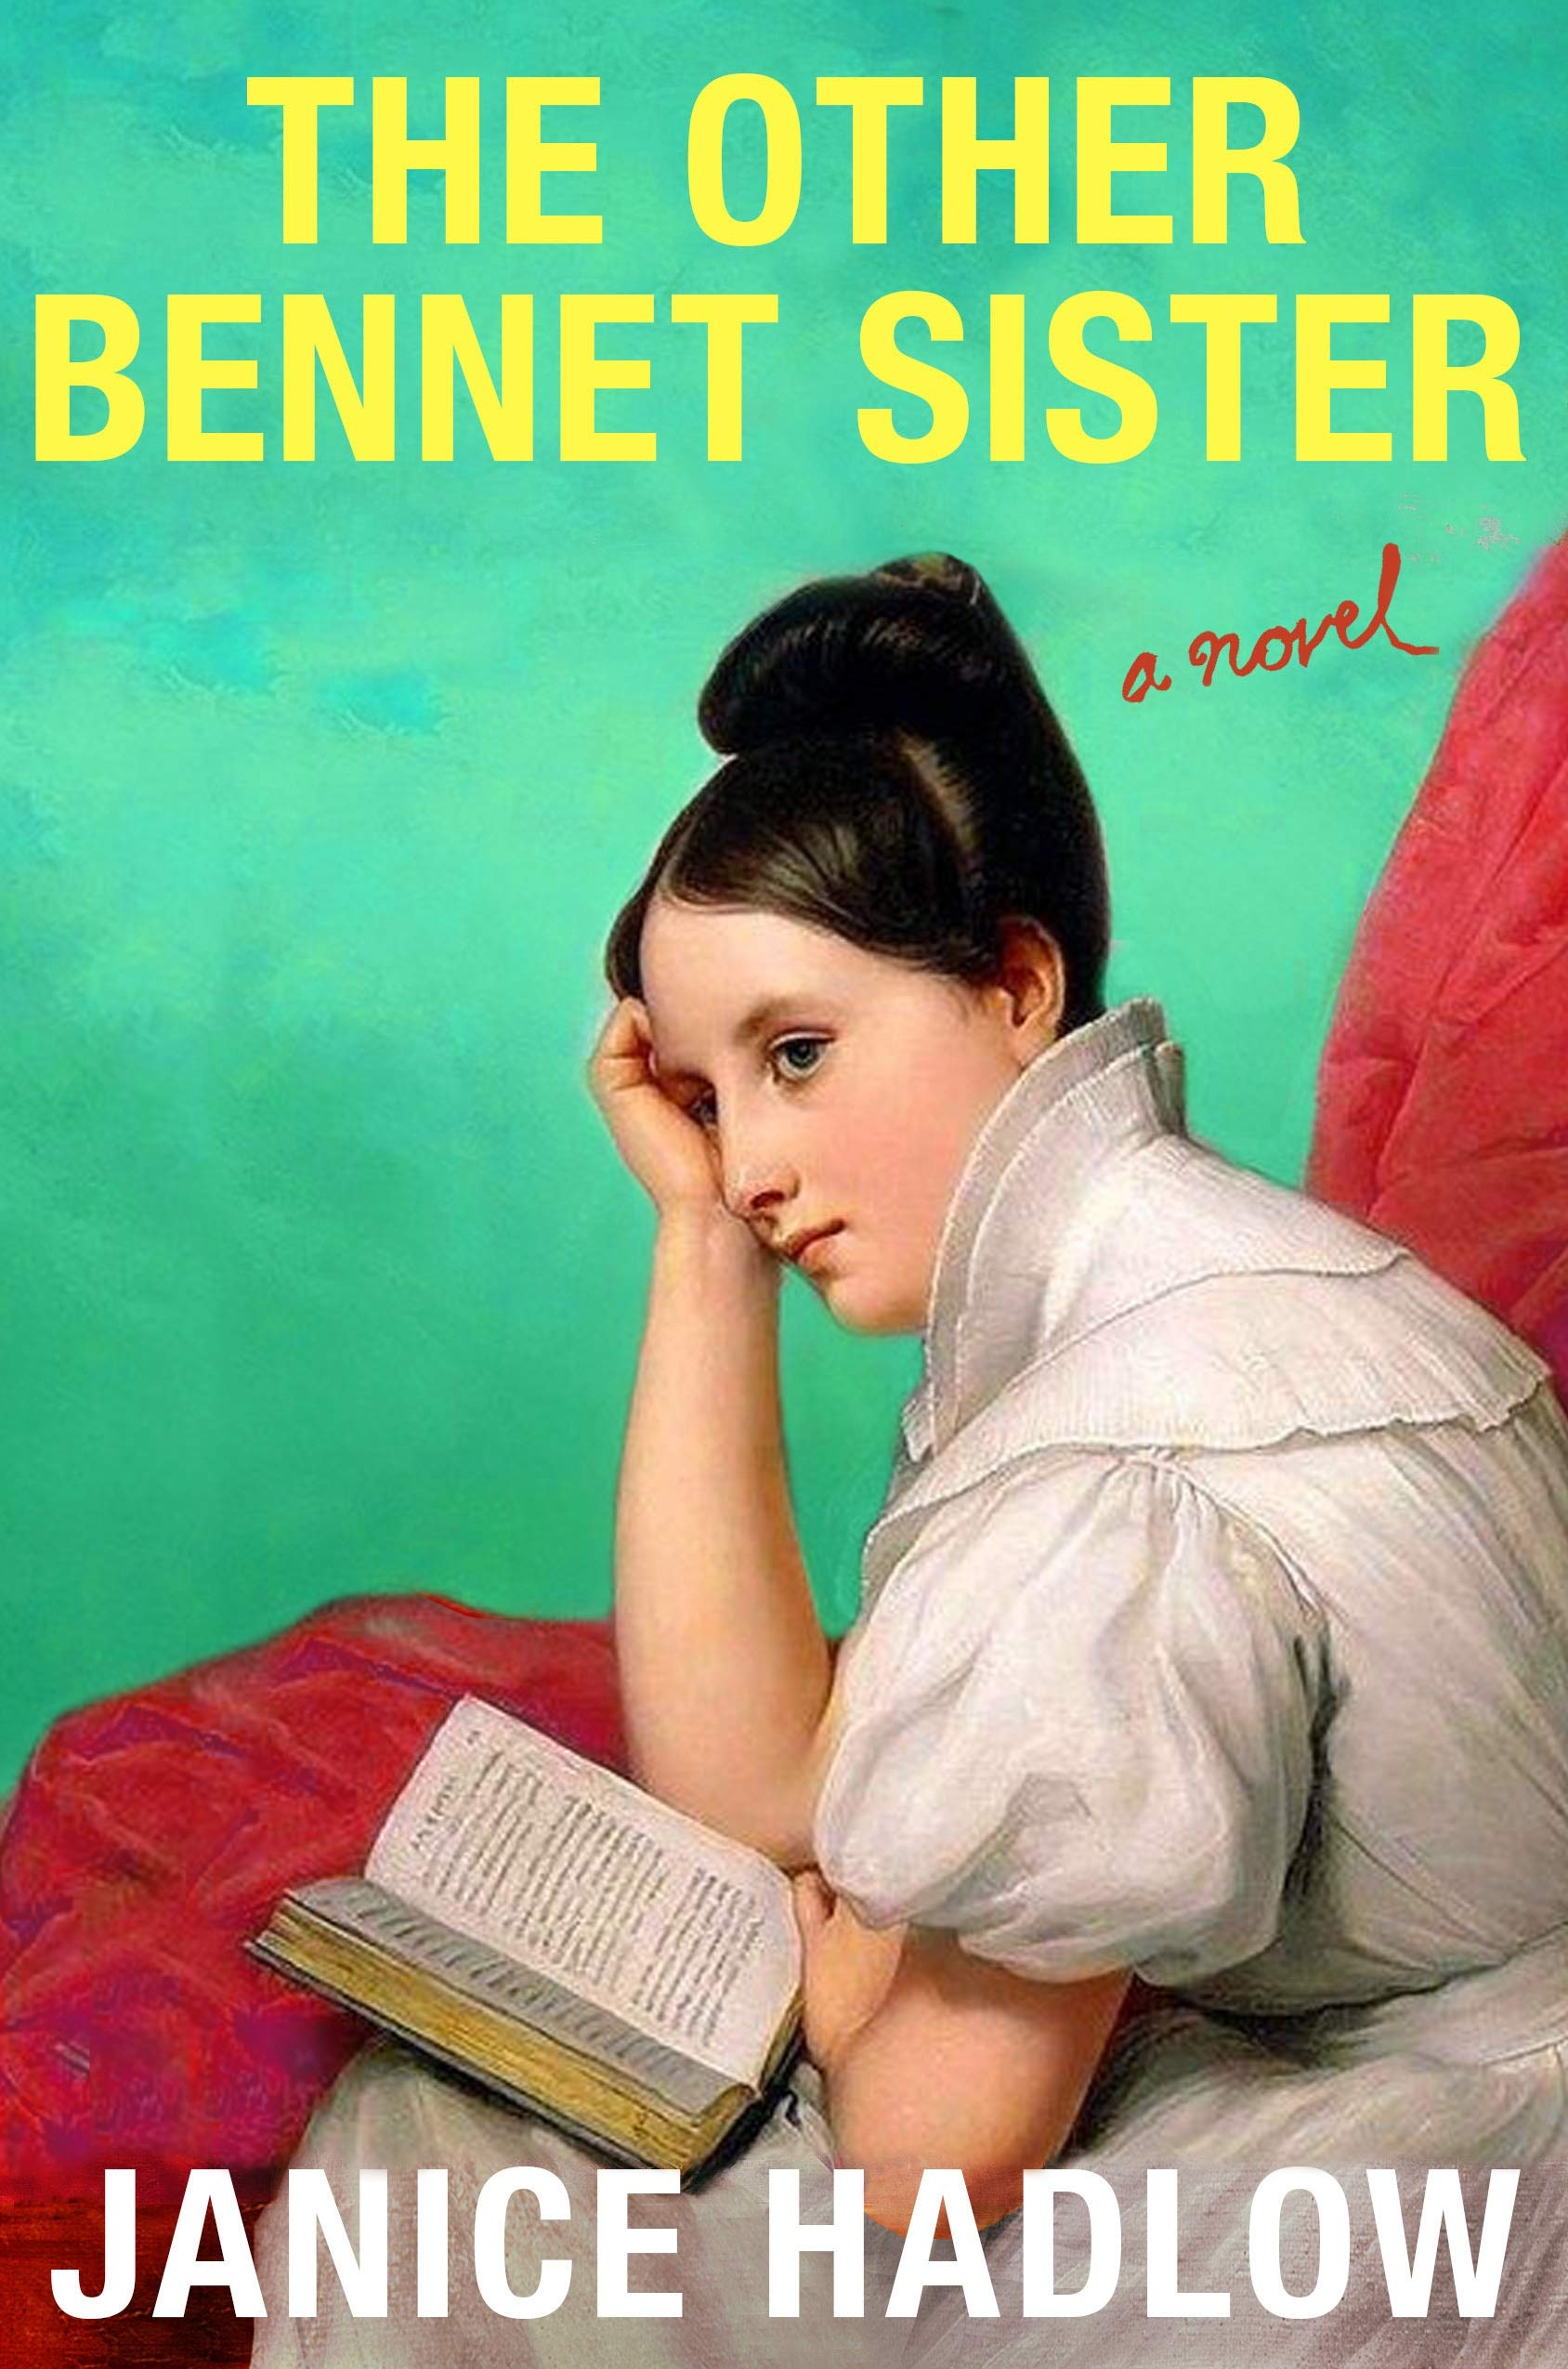 The Other Bennet Sister, by Janice Hadlow ( 2020)